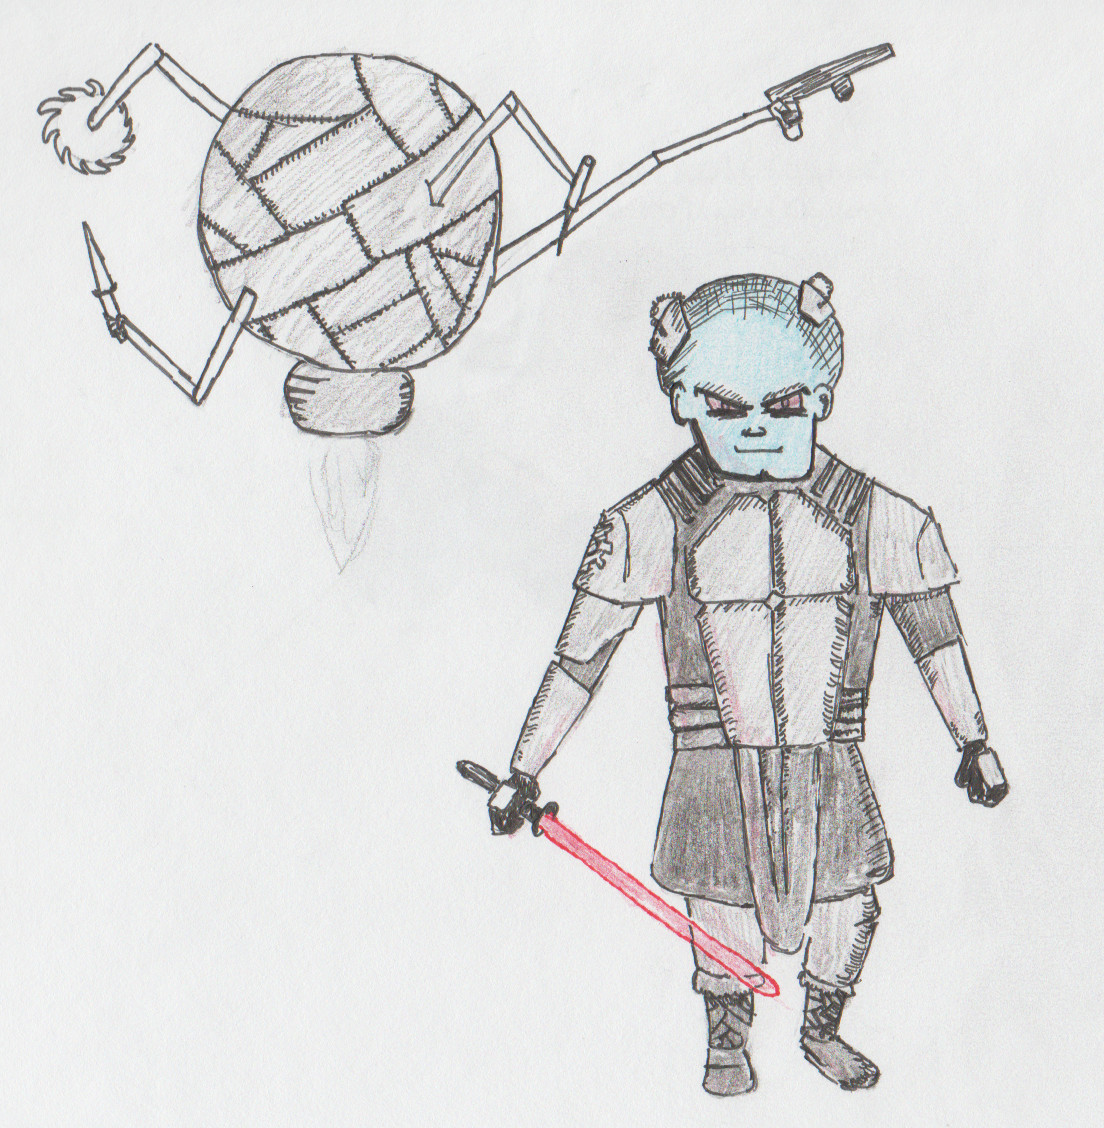 Drawing of Sith lord Darth BigHeadSmalLegs and his Torture Droid...